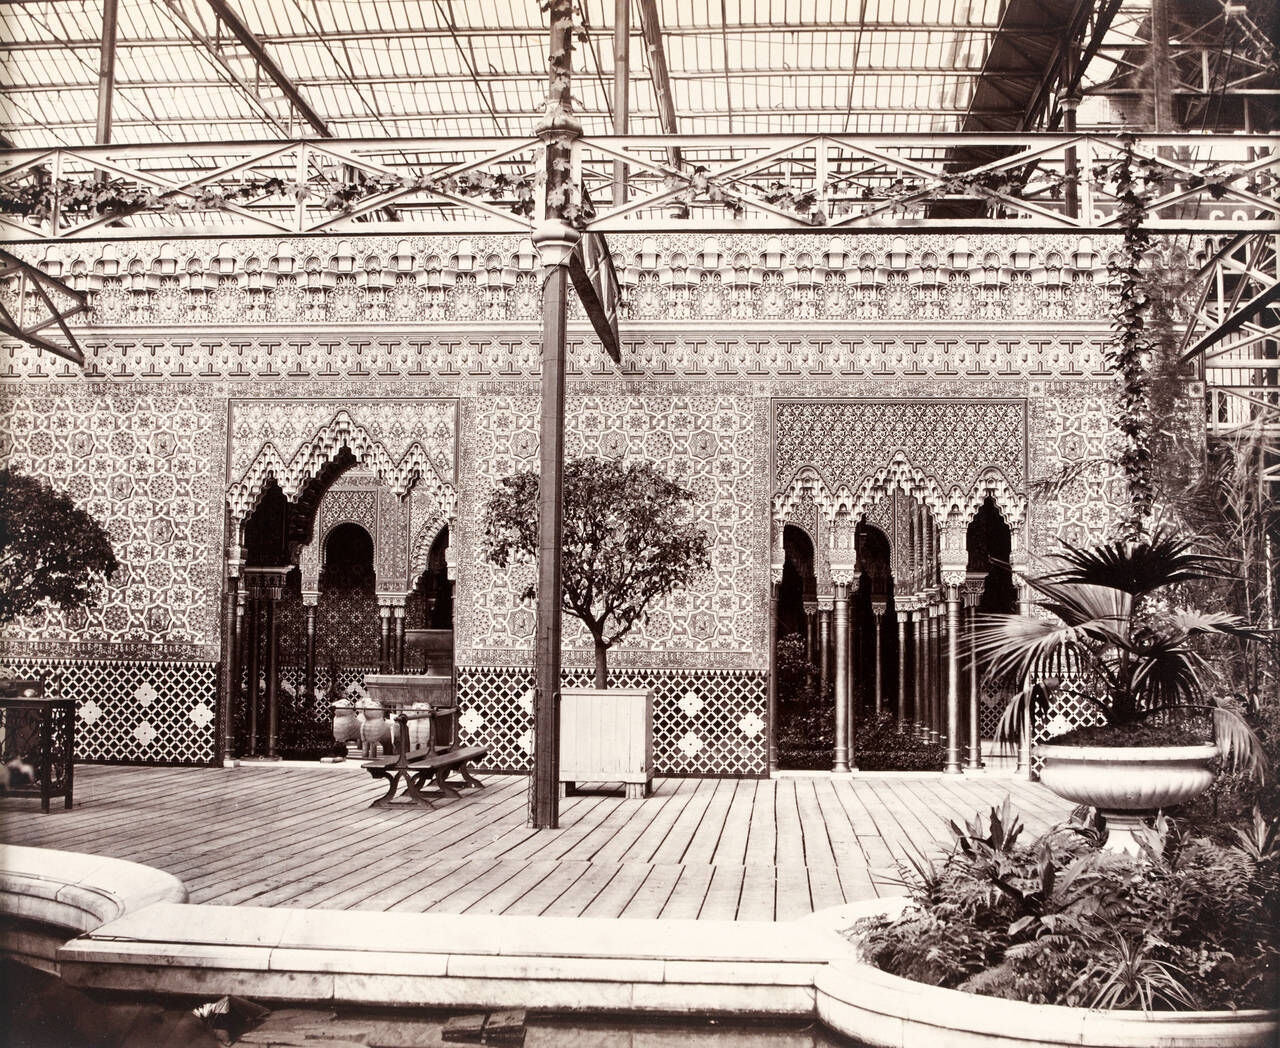 The Alhambra Court at Crystal Palace, south London.